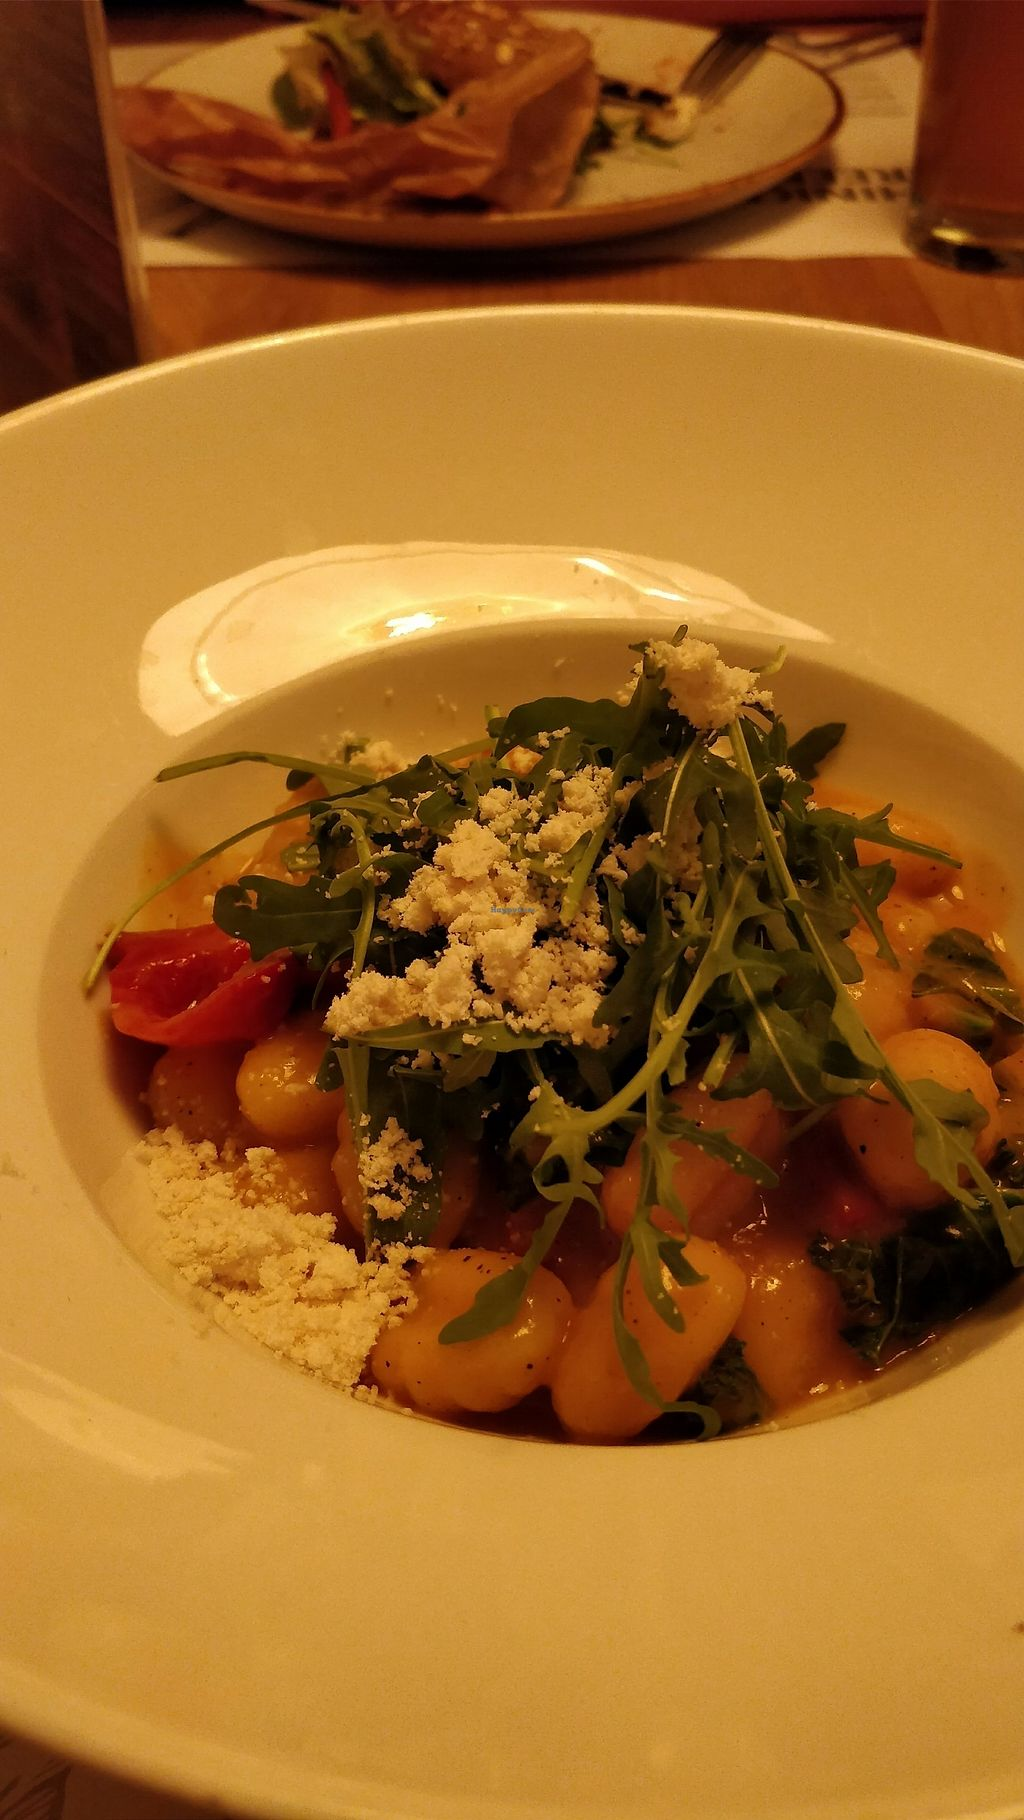 """Photo of Veganic  by <a href=""""/members/profile/ashyda"""">ashyda</a> <br/>Gnocchi in a cheesy sauce <br/> December 6, 2017  - <a href='/contact/abuse/image/76428/332929'>Report</a>"""